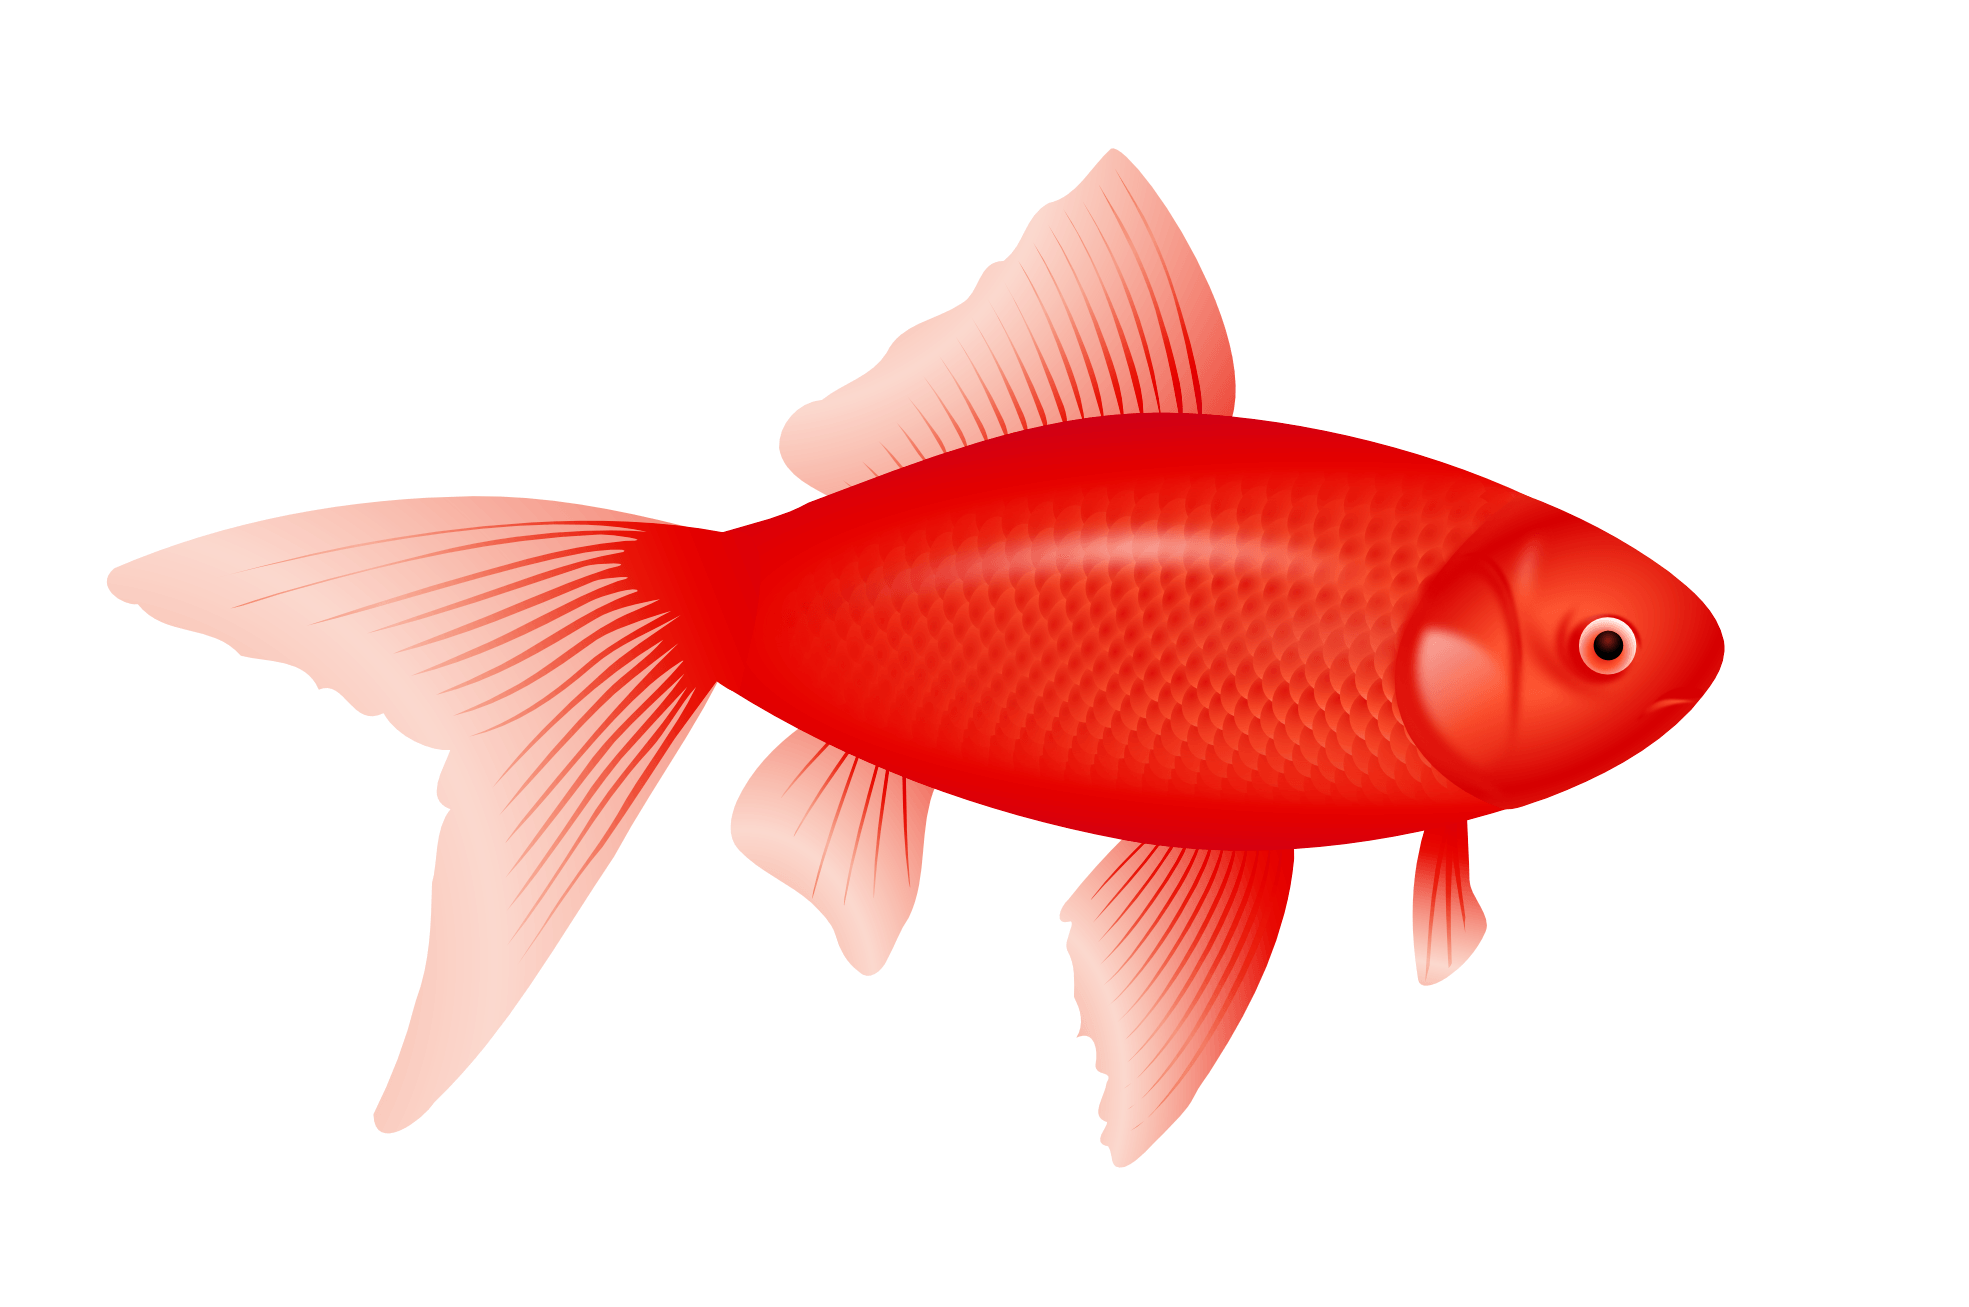 Red Fish Png Image PNG Image